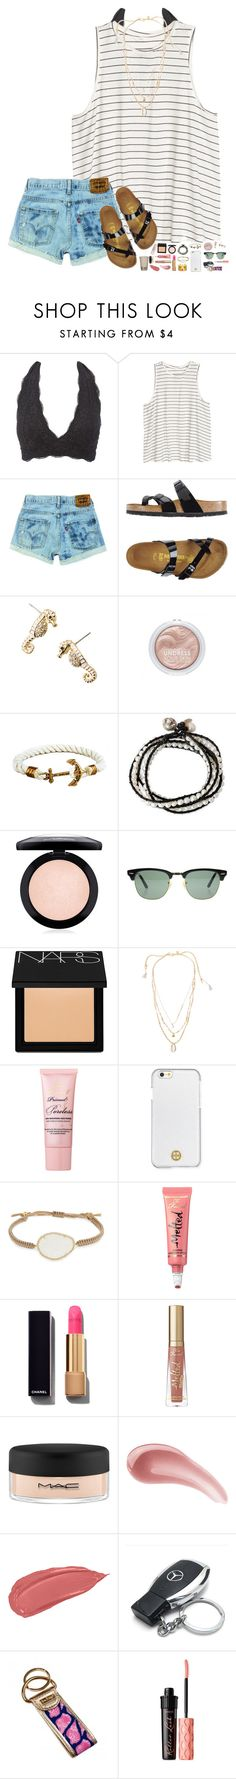 """""""your lies are bullets, your mouth's the gun..."""" by hopemarlee ❤ liked on Polyvore featuring Charlotte Russe, Birkenstock, Lilly Pulitzer, NOVICA, MAC Cosmetics, Ray-Ban, NARS Cosmetics, Chan Luu, Too Faced Cosmetics and Tory Burch"""